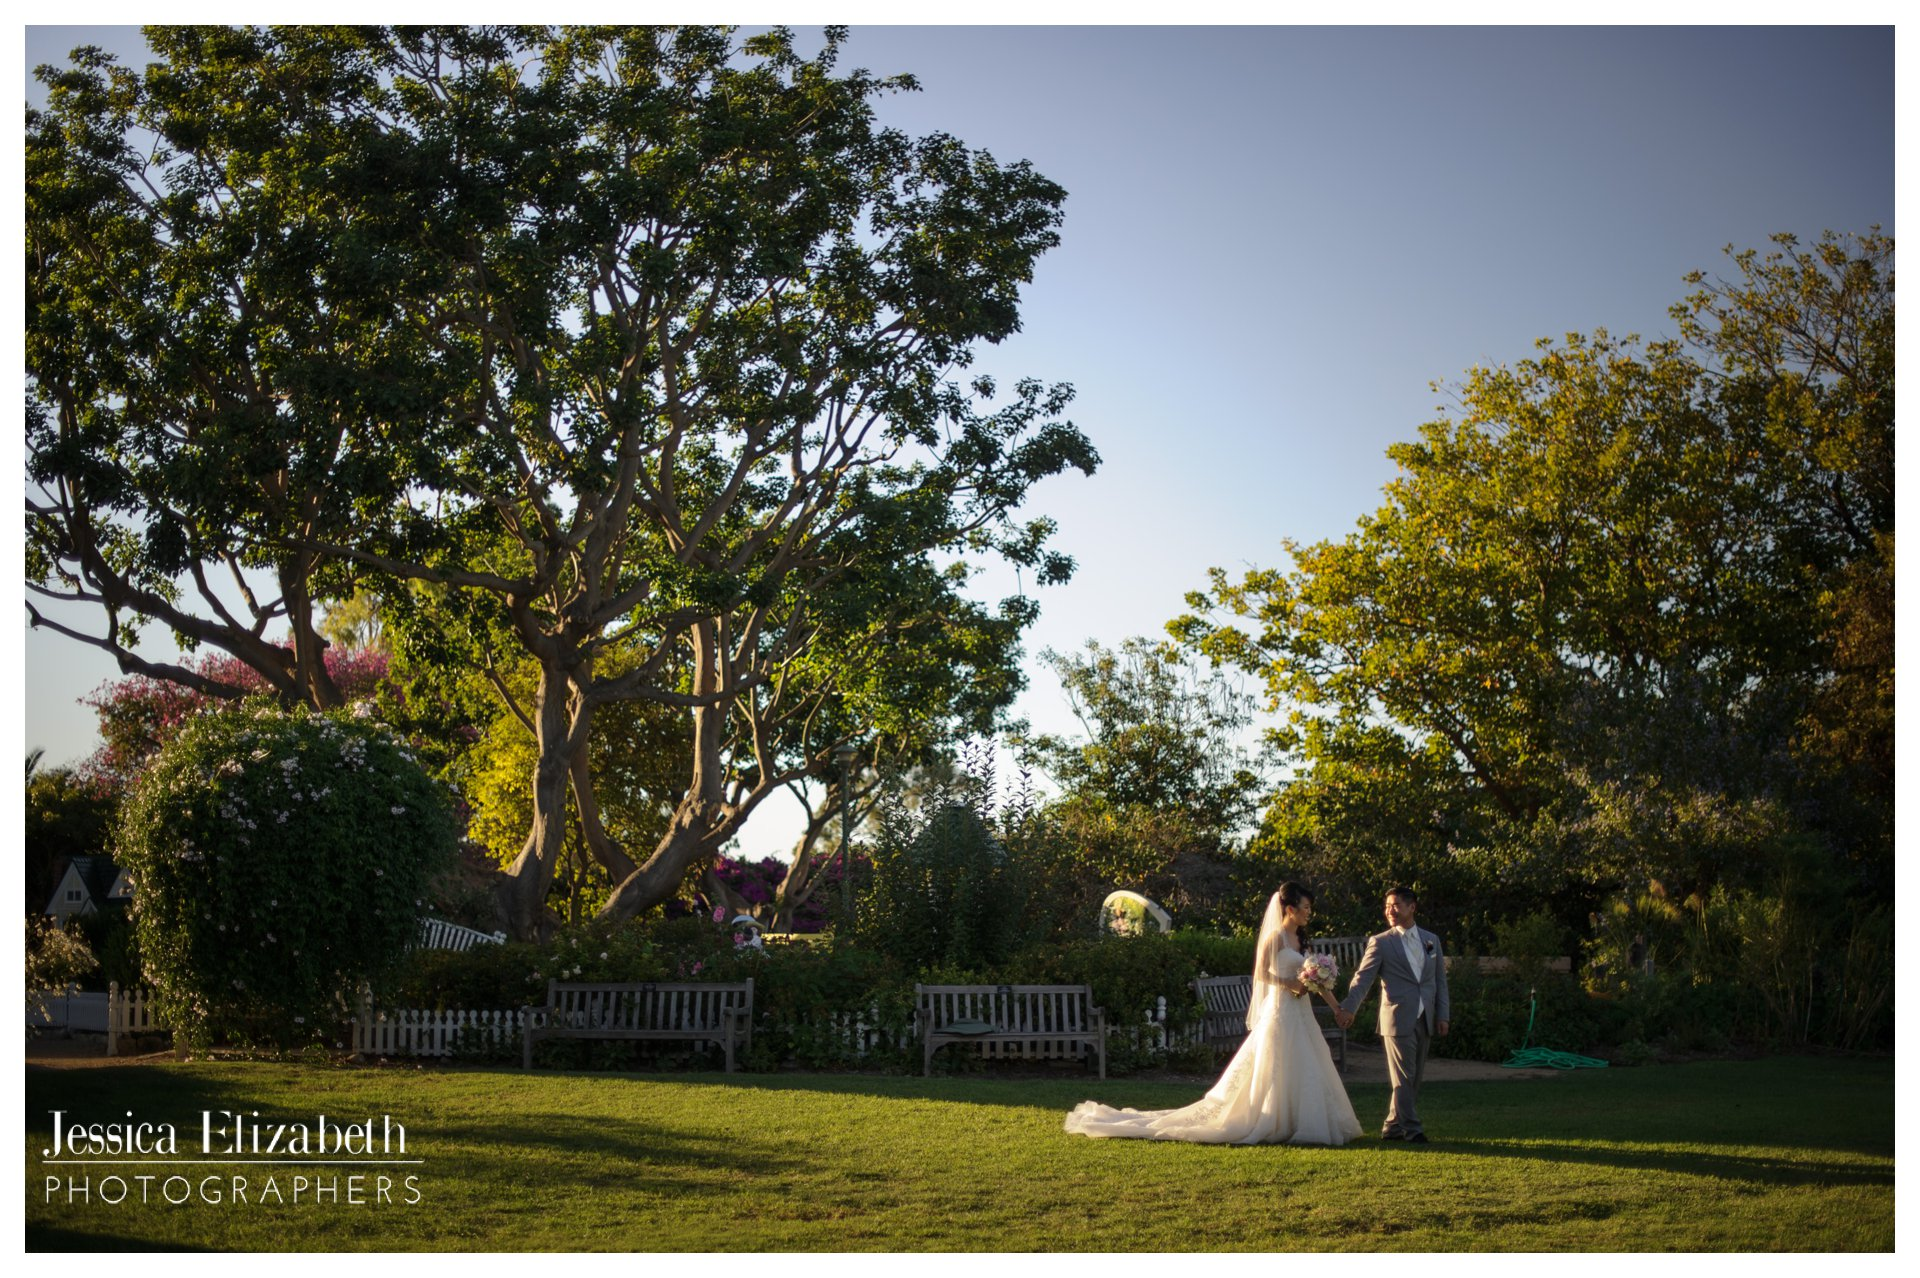 23-South Coast Botanic Garden Palos Verdes Wedding Photography by Jessica Elizabeth 2.51.26 PM